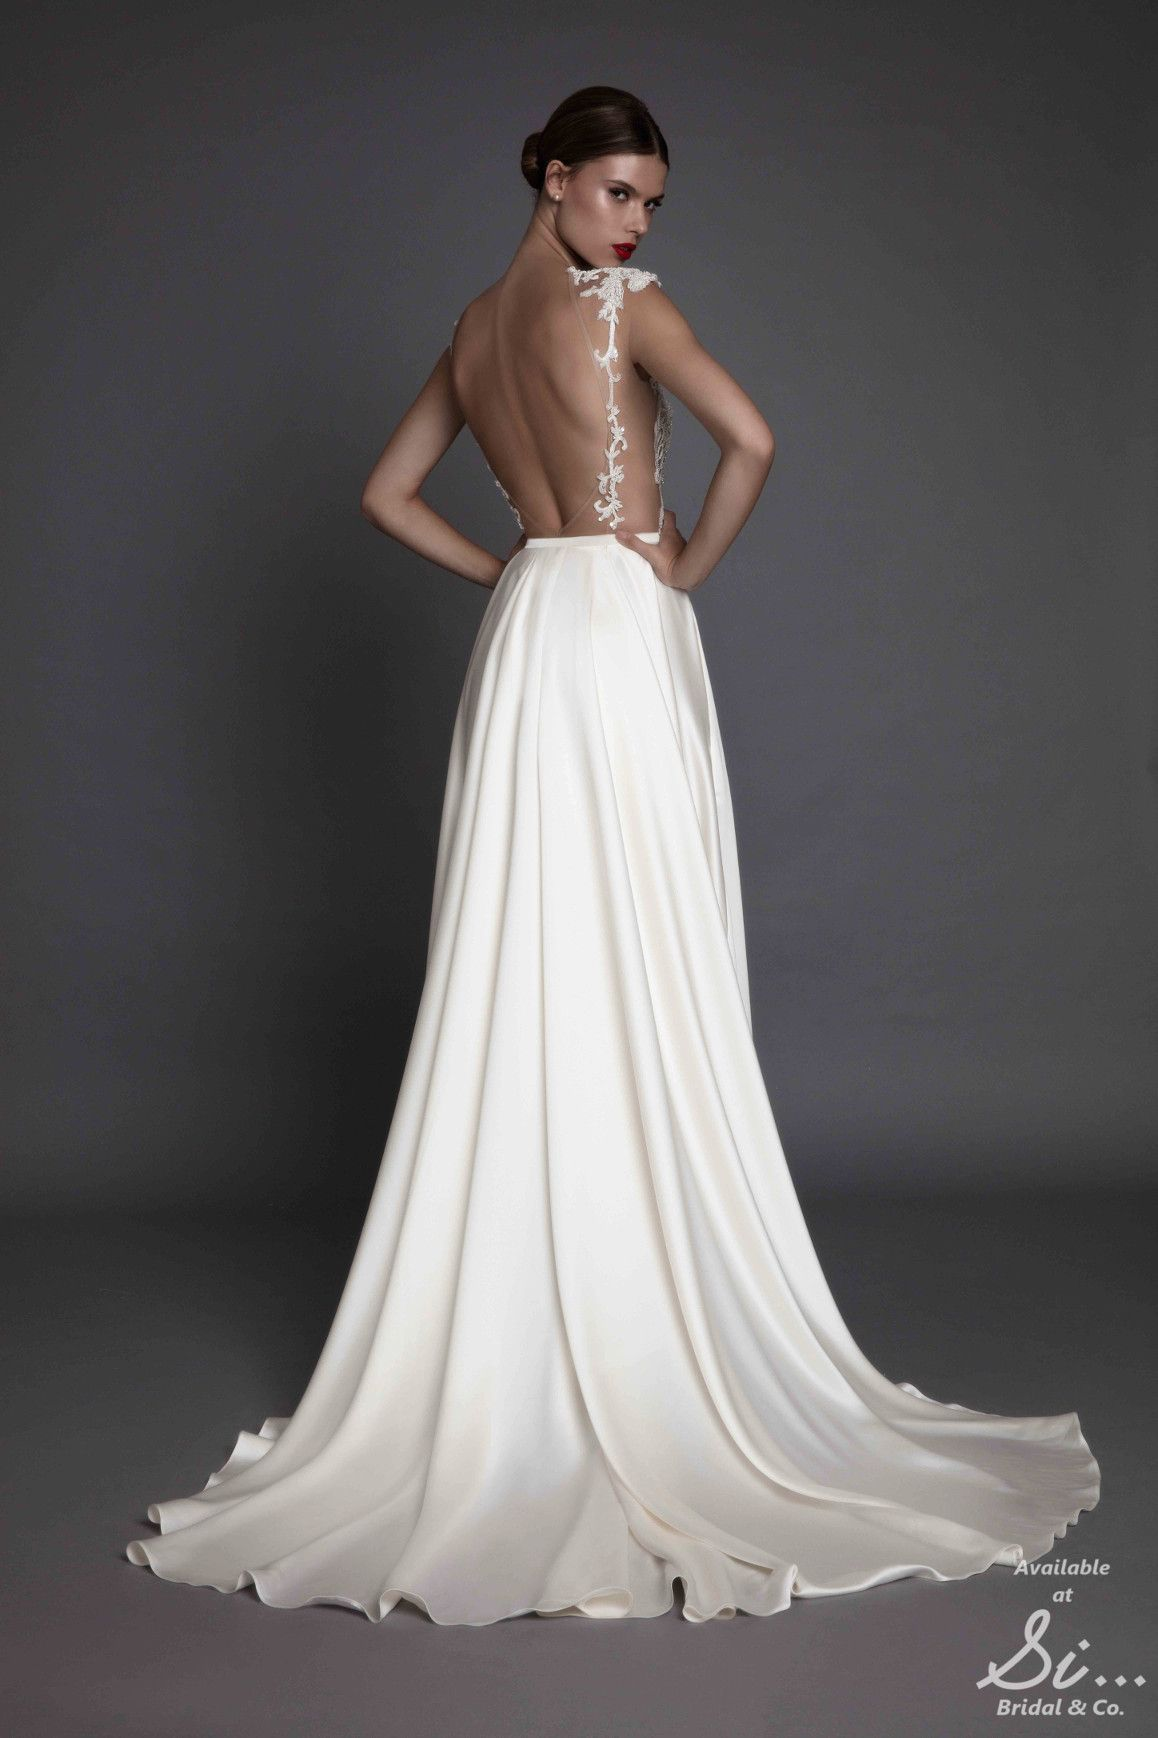 Aurora muse by berta brand new luxury diffusion line by the